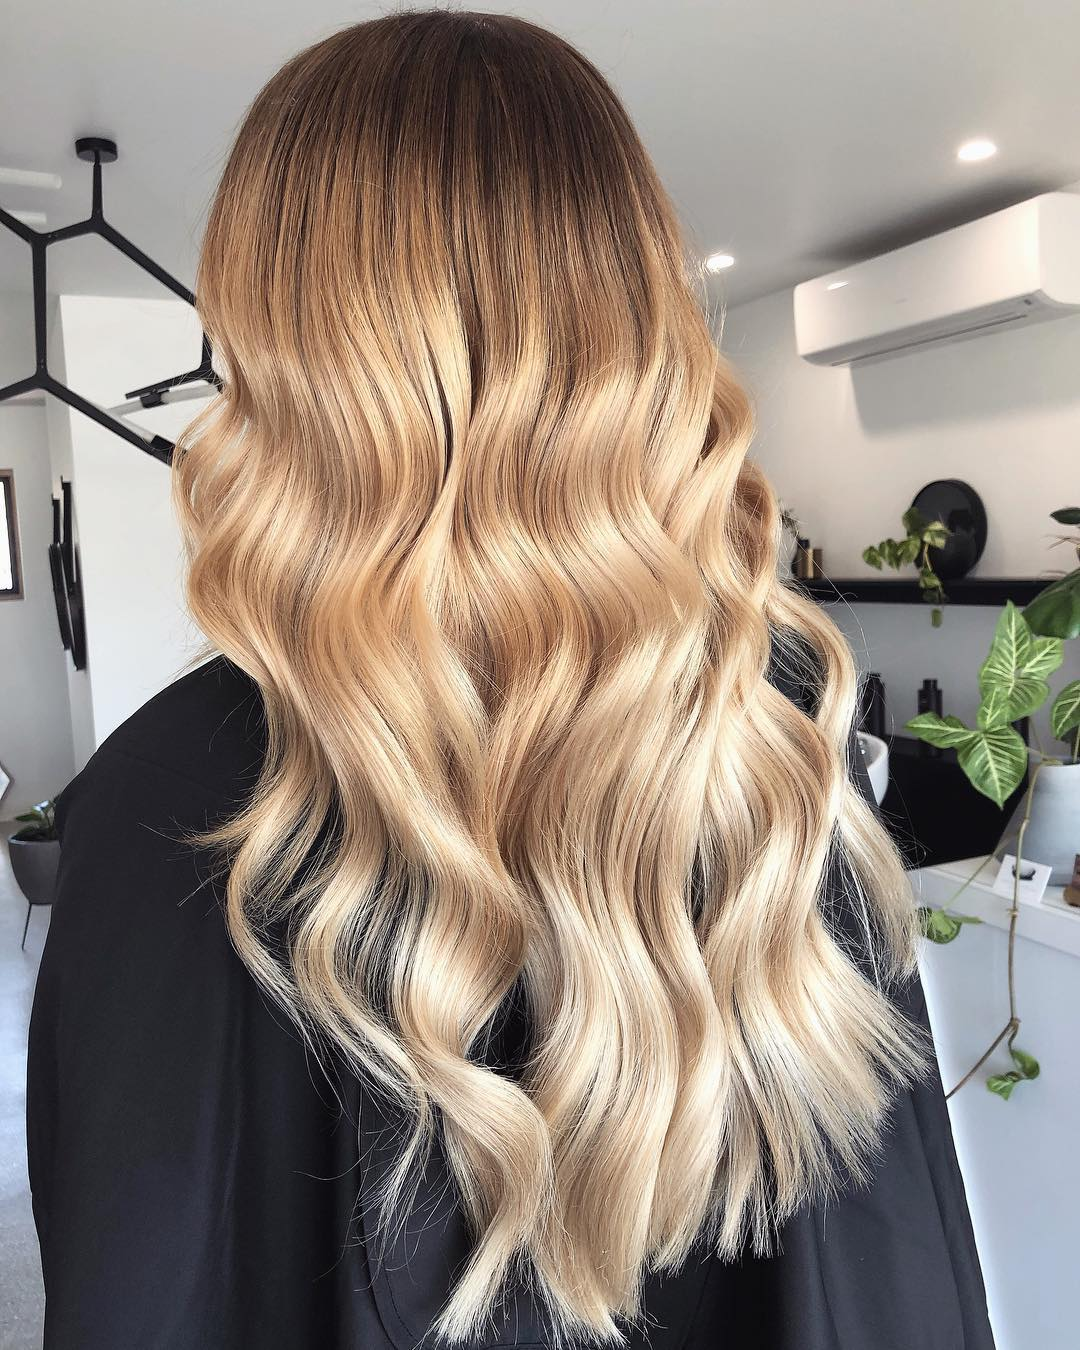 Easy Hair Hacks to Achieve Influencer-Level Waves